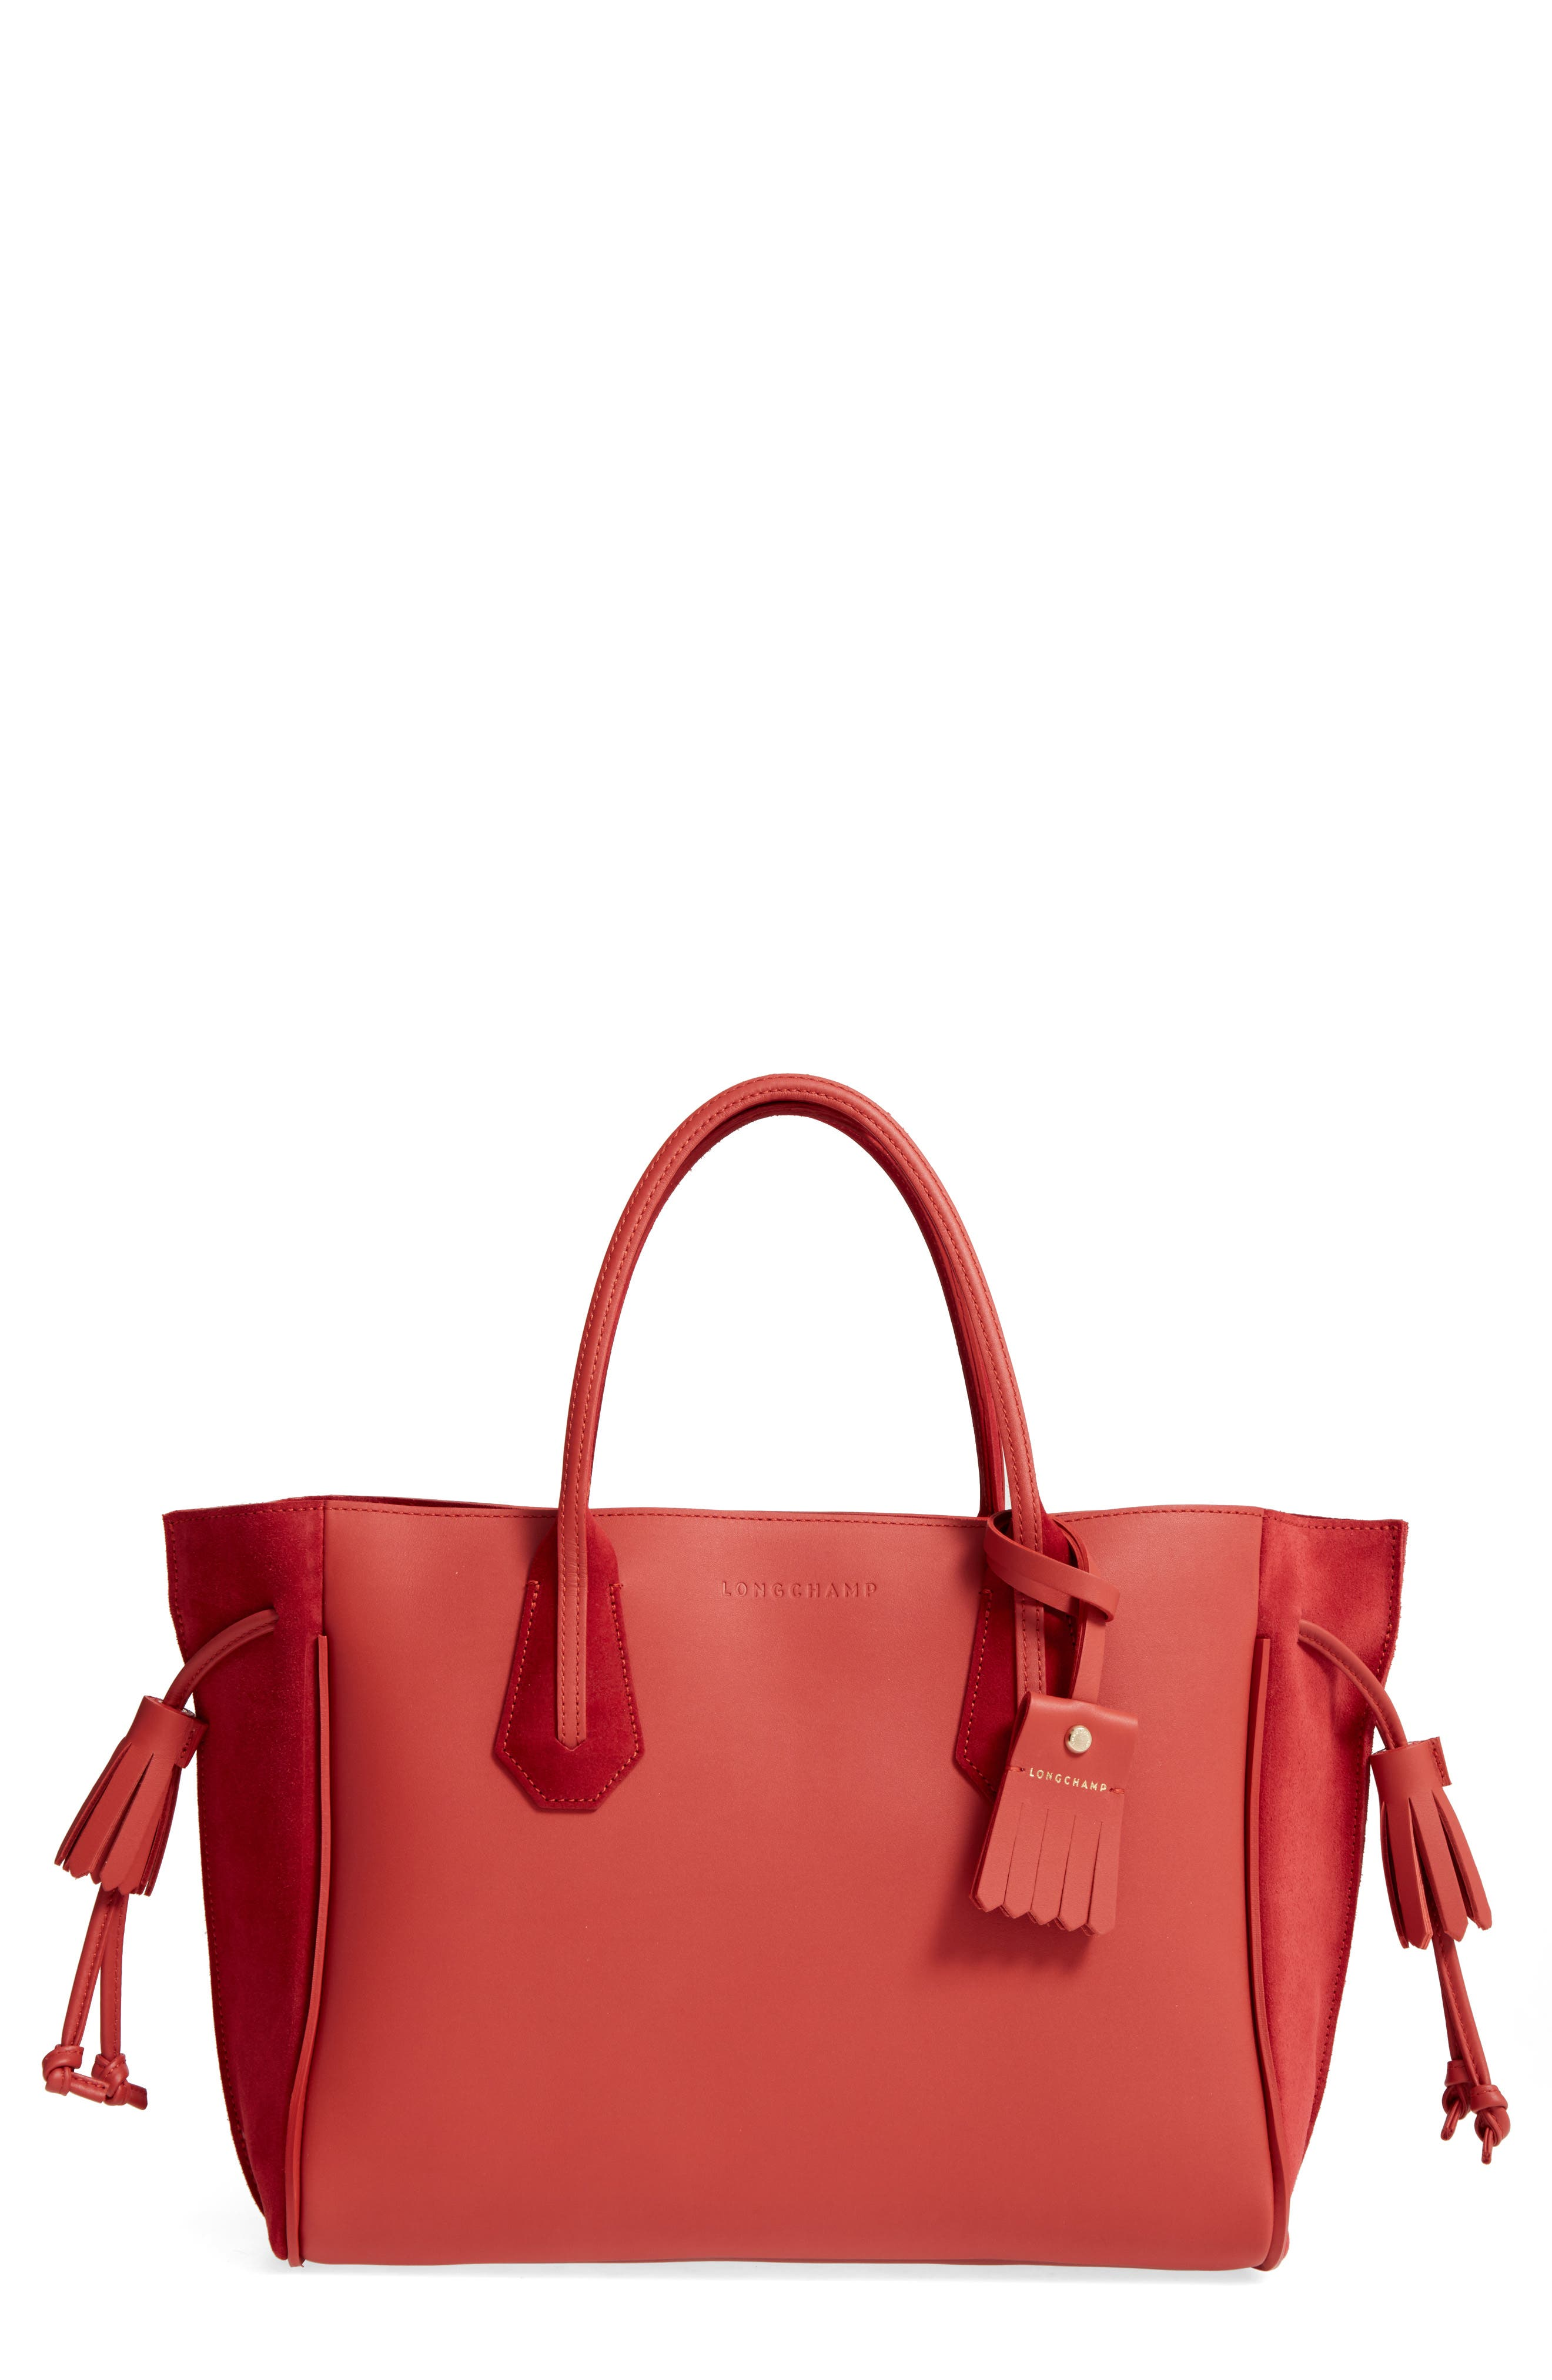 Alternate Image 1 Selected - Longchamp Medium Penelope Fastaisie Leather Tote